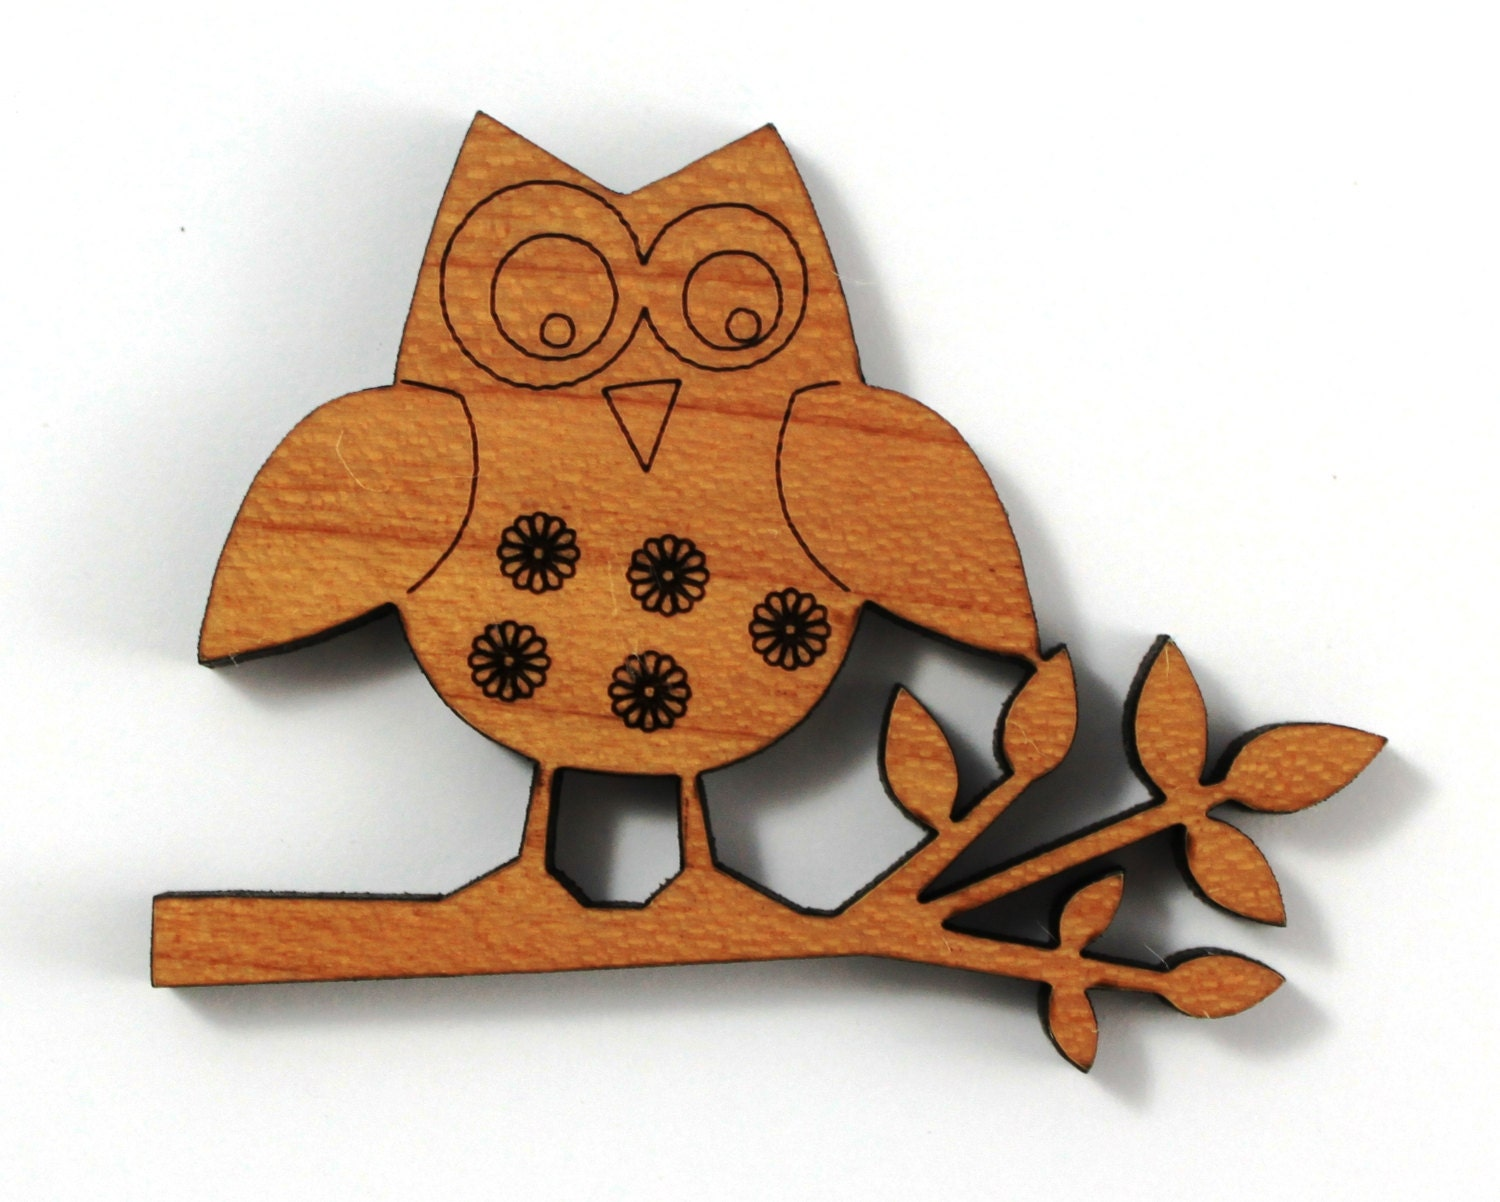 Laser cut supplies 1 piece floral owl charms cherry wood for Skilled craft worker makes furniture art etc